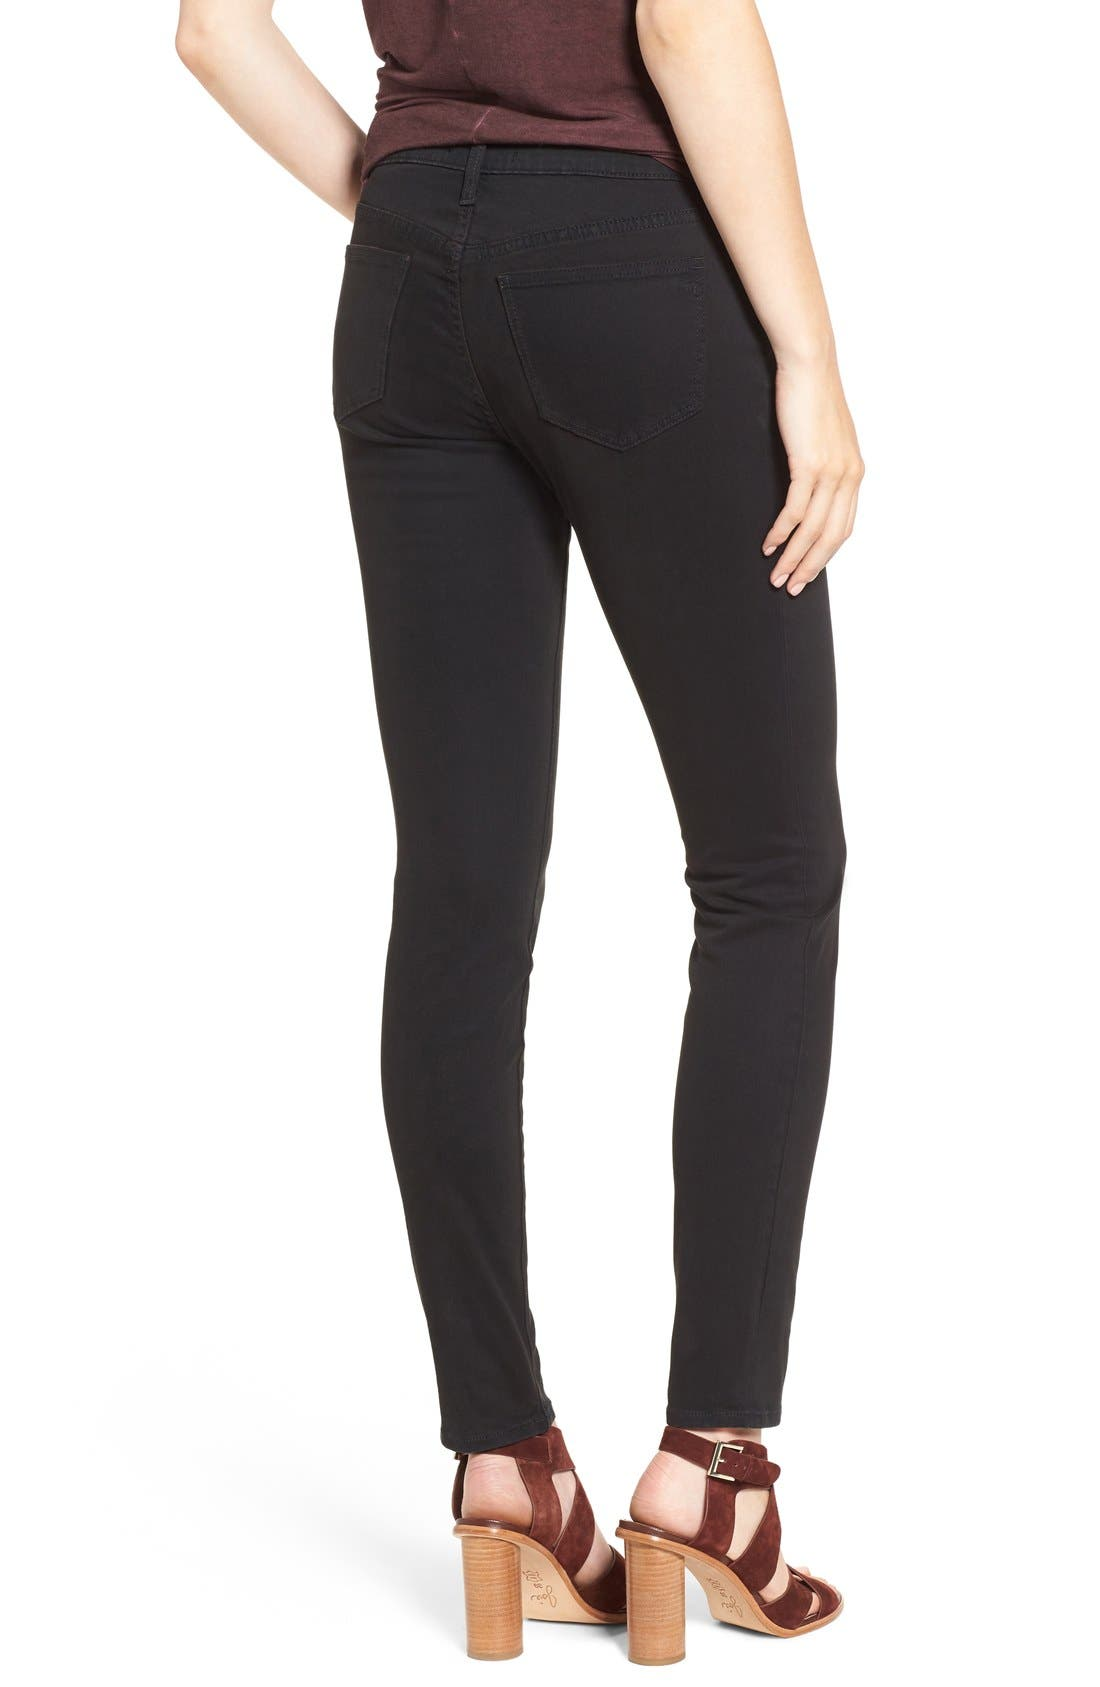 MADEWELL, Garment Dyed Skinny Jeans, Alternate thumbnail 3, color, 001